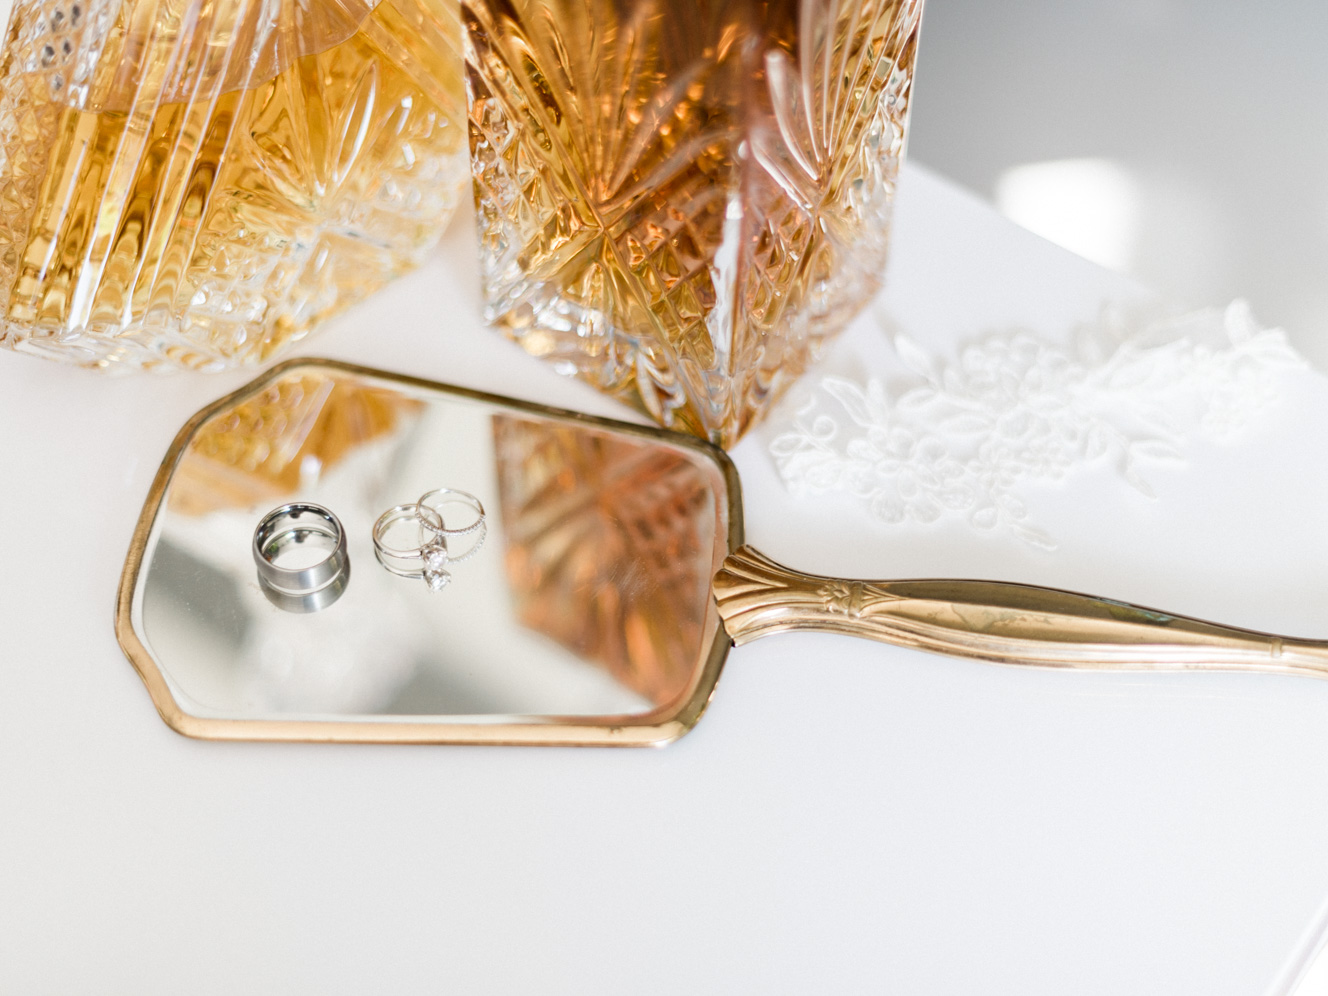 Wedding Ring Details With Lace Garter and Hand Held Vintage Mirror | kelseyandnate.com